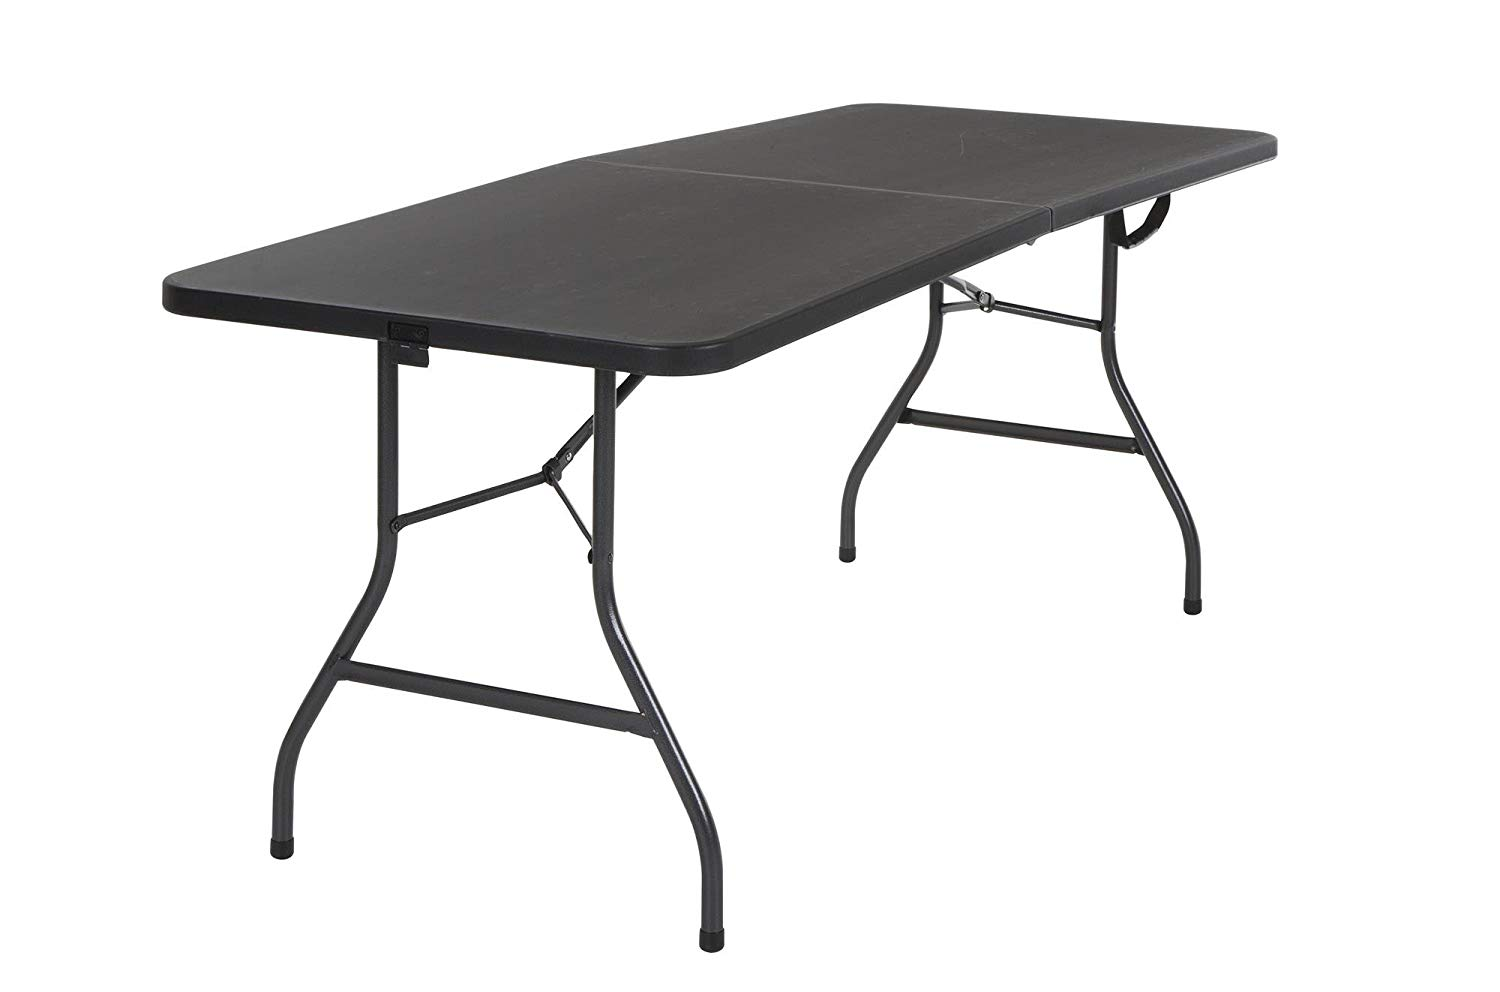 Cosco Deluxe Fold-in-Half Blow Molded Table, 6 ft by 30 inches